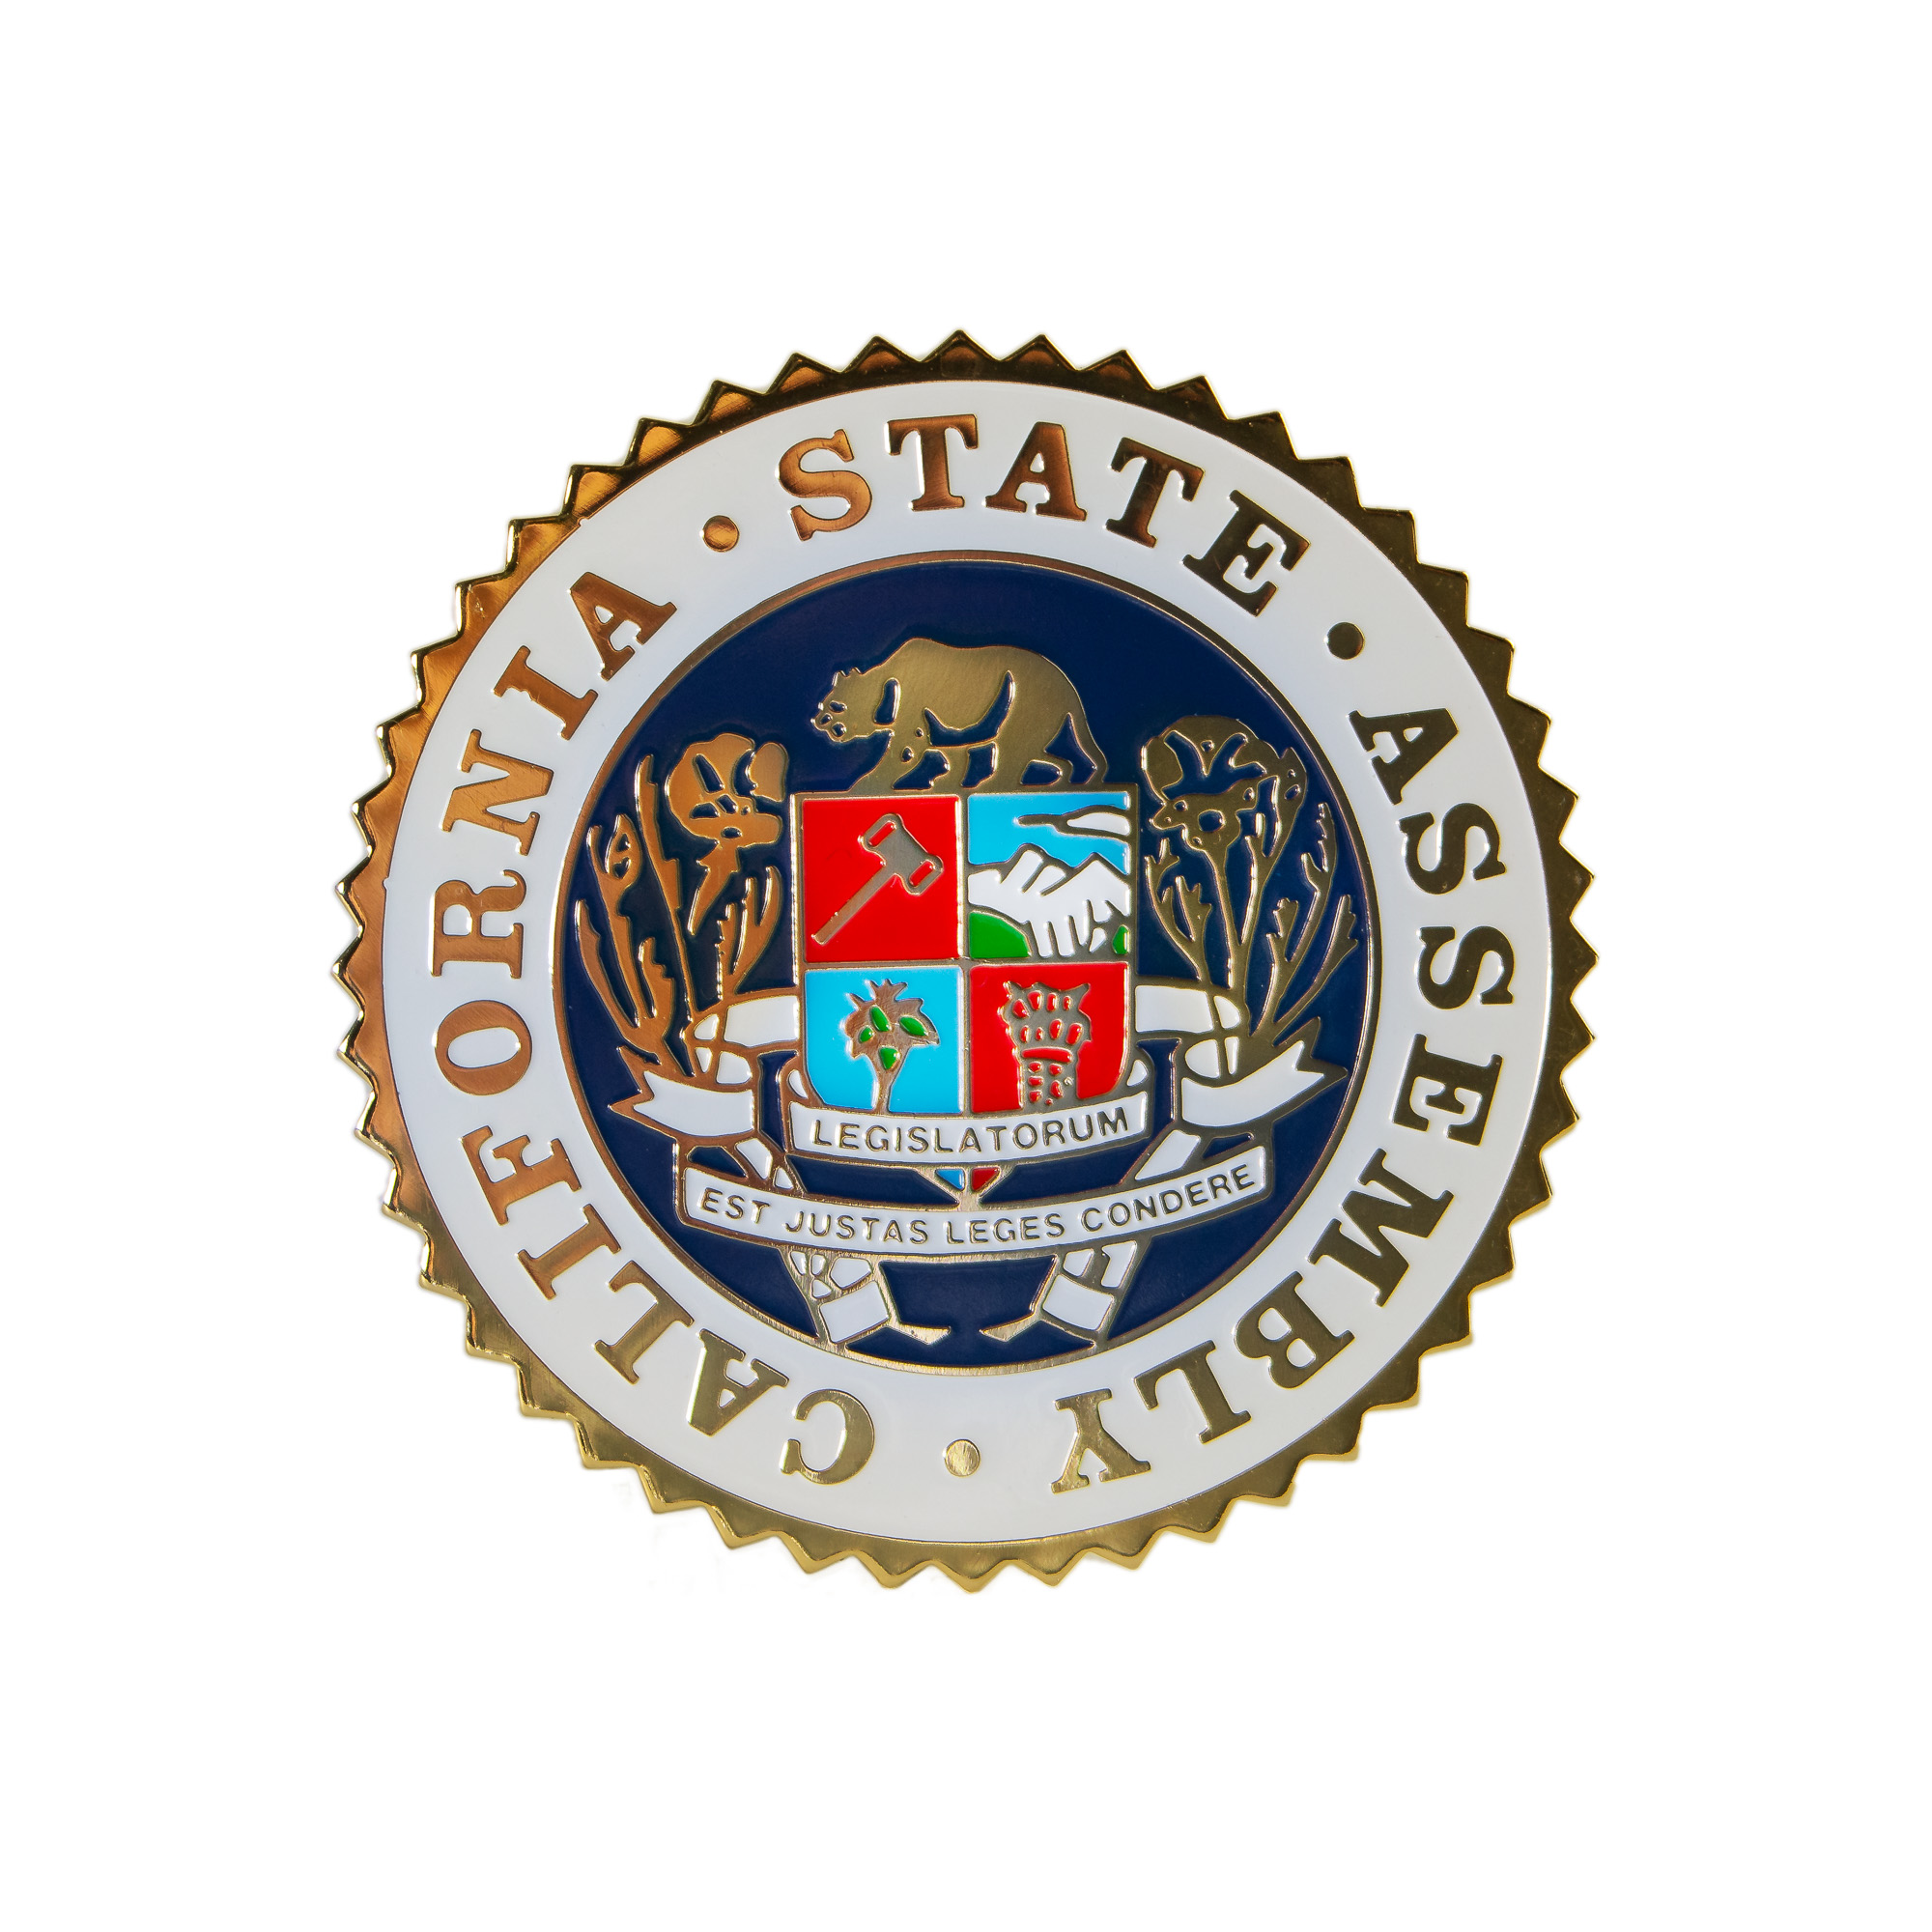 The State Assembly Seal